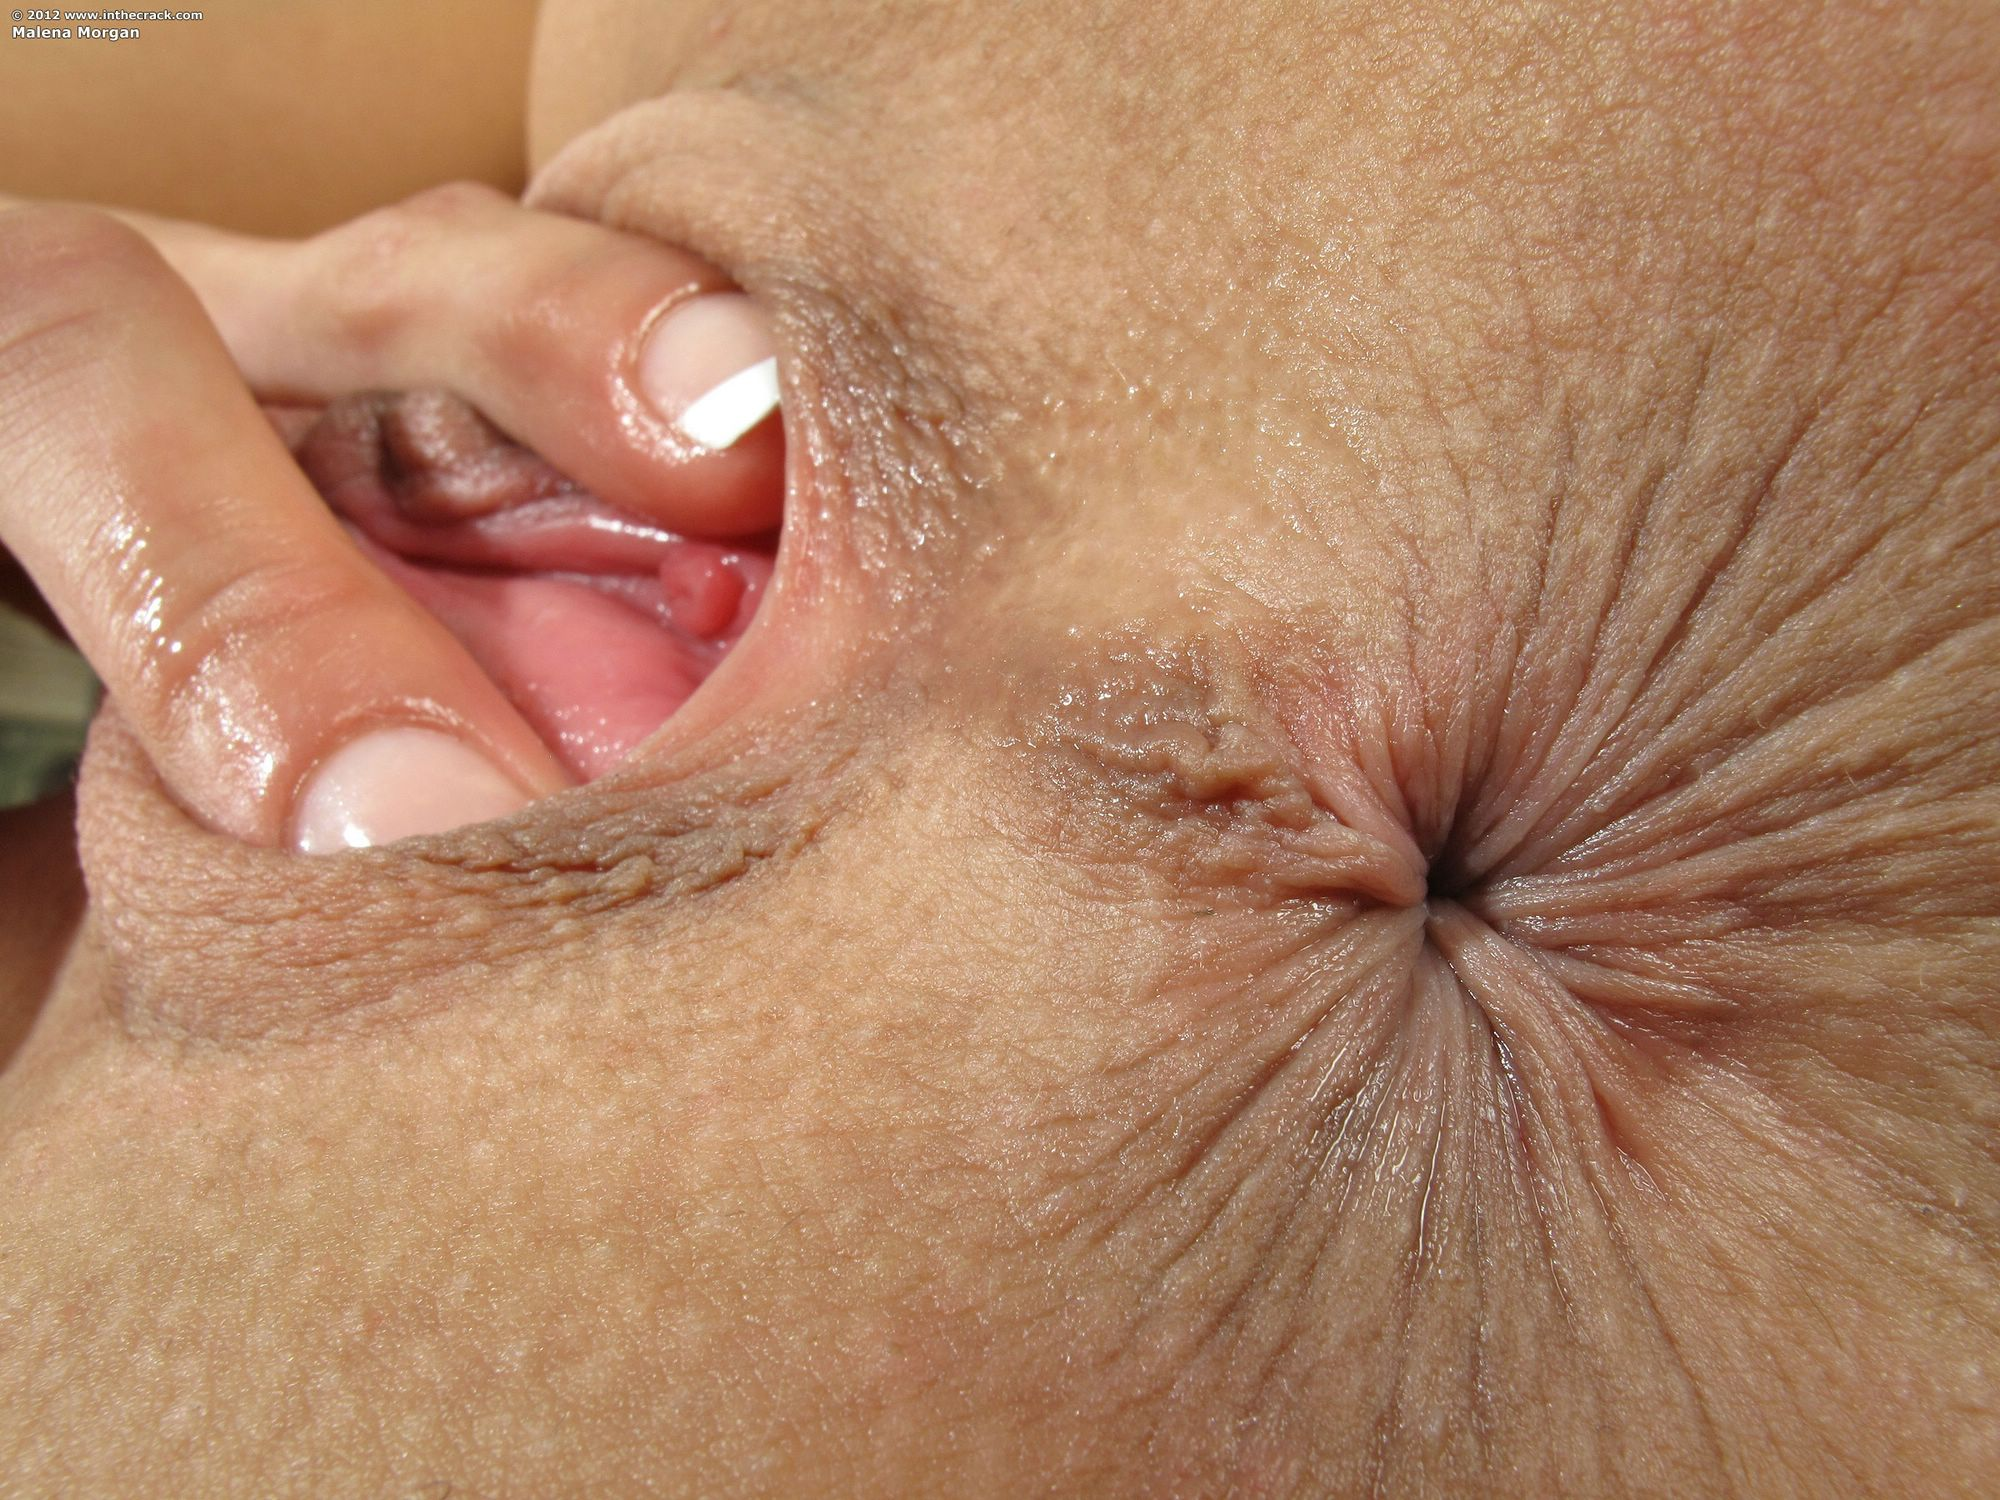 Necessary up close asshole pictures xxx porn what excellent